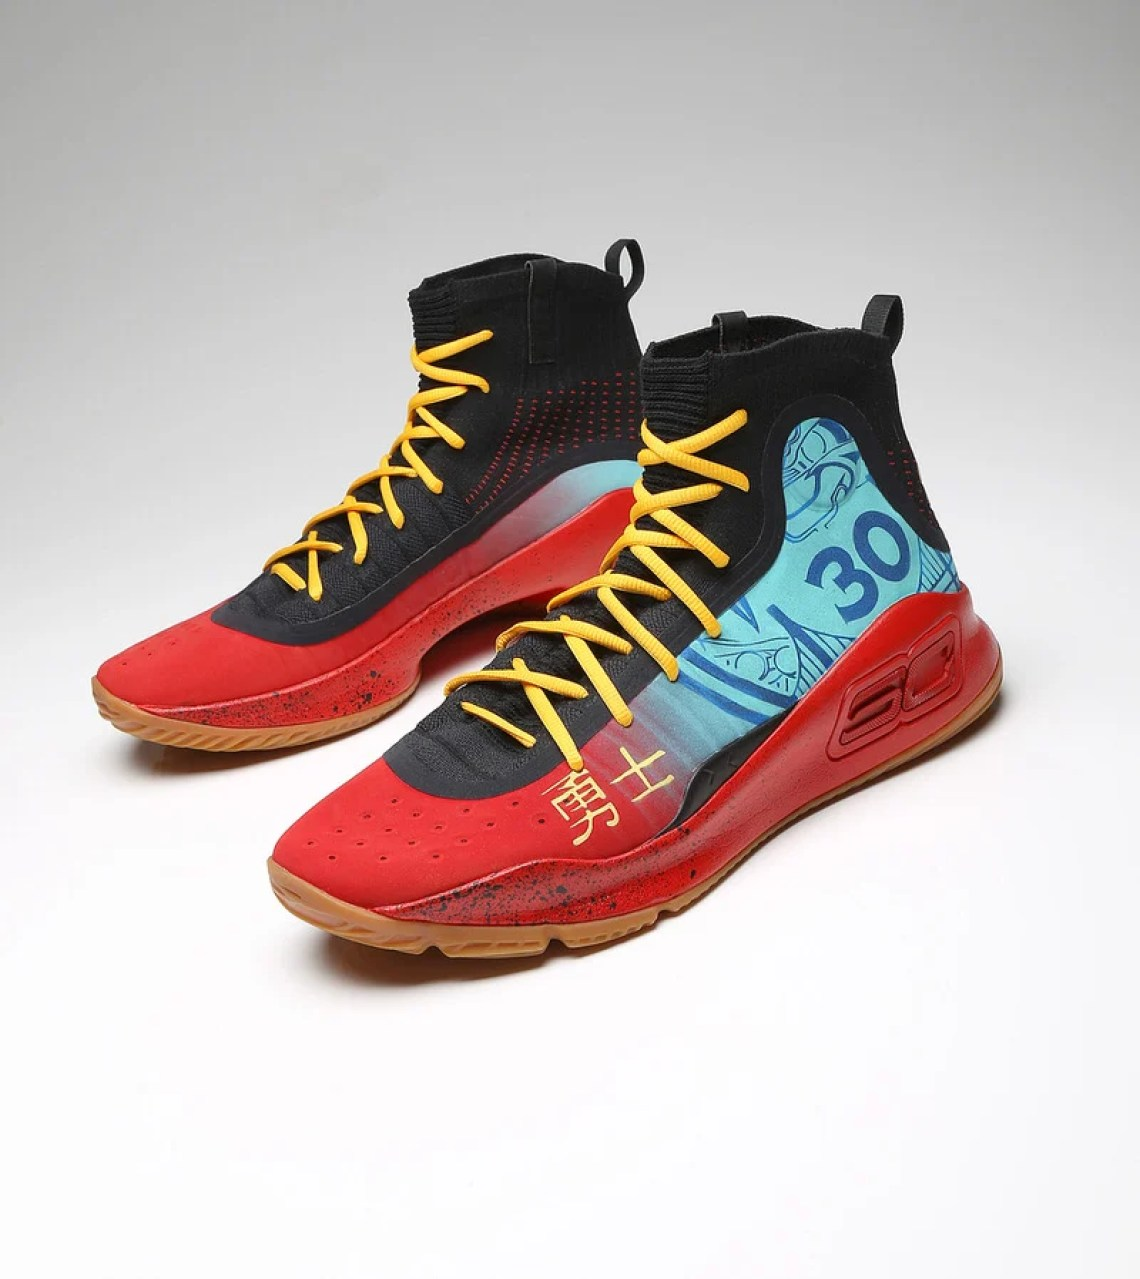 ecf993c22 Stephen Curry s Exact  Chinese New Year  Under Armour Curry 4